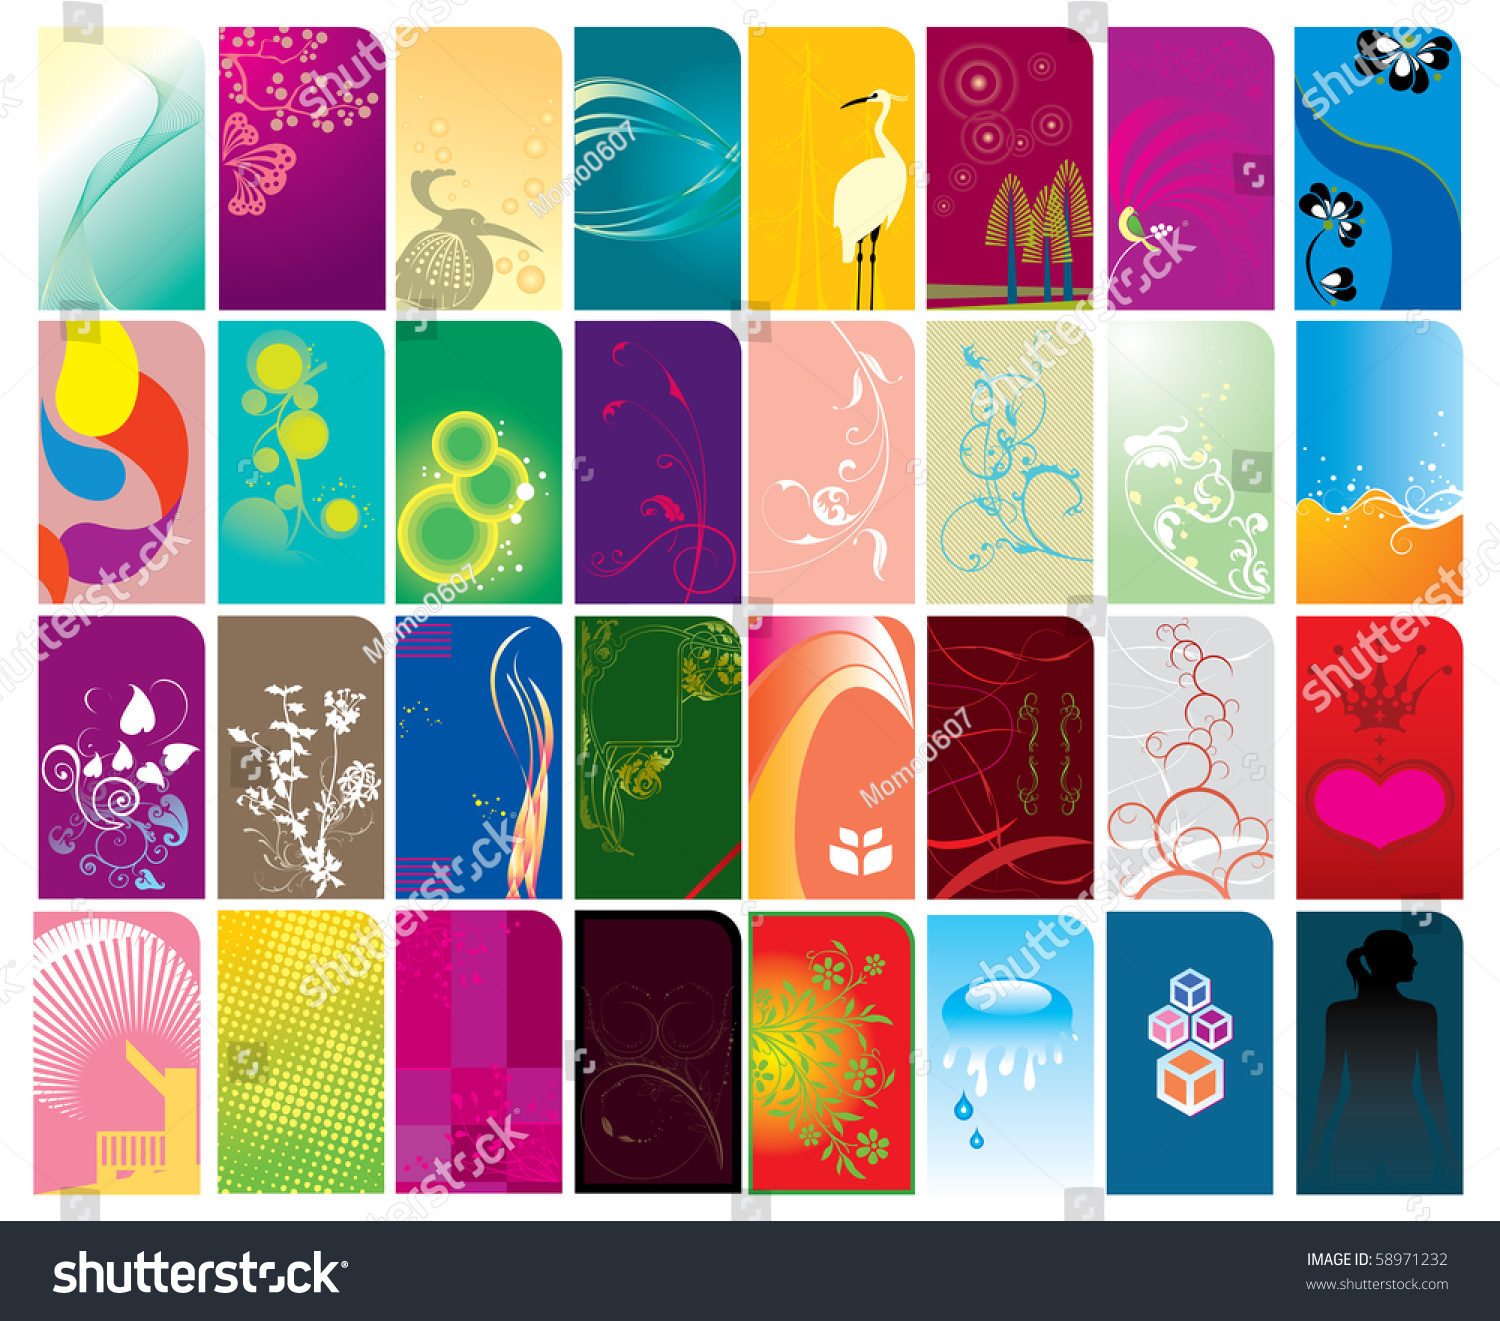 Various type business card designs stock illustration 58971232 various type of business card designs colourmoves